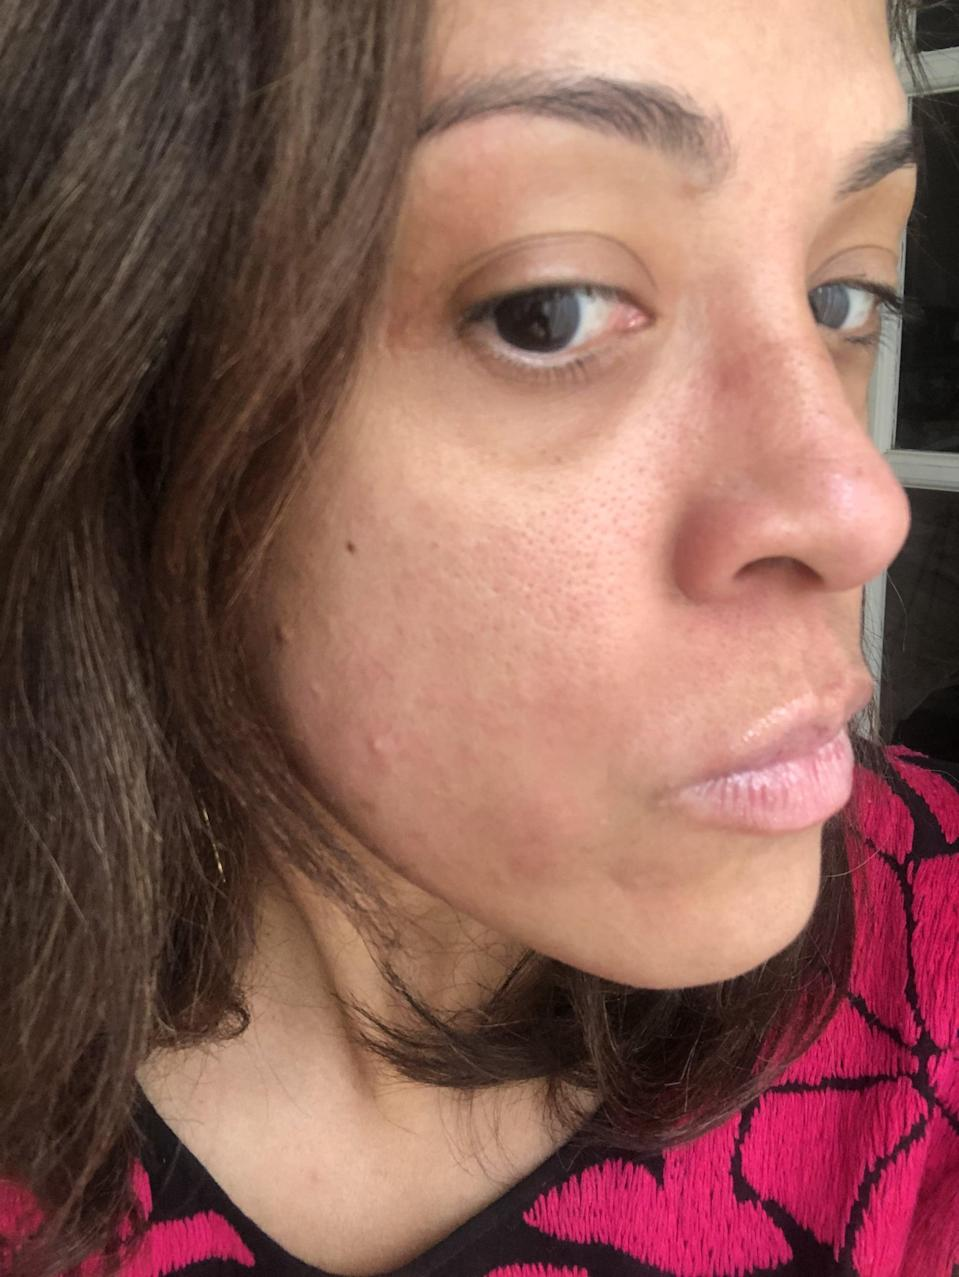 """<p>For the sake of transparency, here is a closeup of my skin. Not only is it easy to see the redness, uneven tone, and <a href=""""https://www.popsugar.com/beauty/summer-hyperpigmentation-treatments-products-47623442"""" class=""""link rapid-noclick-resp"""" rel=""""nofollow noopener"""" target=""""_blank"""" data-ylk=""""slk:hyperpigmentation"""">hyperpigmentation</a> on my (obviously) bare face, I'd like to even point out the marks from where I had been <a href=""""https://www.popsugar.com/beauty/makeup-hack-glasses-video-47057786"""" class=""""link rapid-noclick-resp"""" rel=""""nofollow noopener"""" target=""""_blank"""" data-ylk=""""slk:wearing glasses earlier that day"""">wearing glasses earlier that day</a>.</p>"""